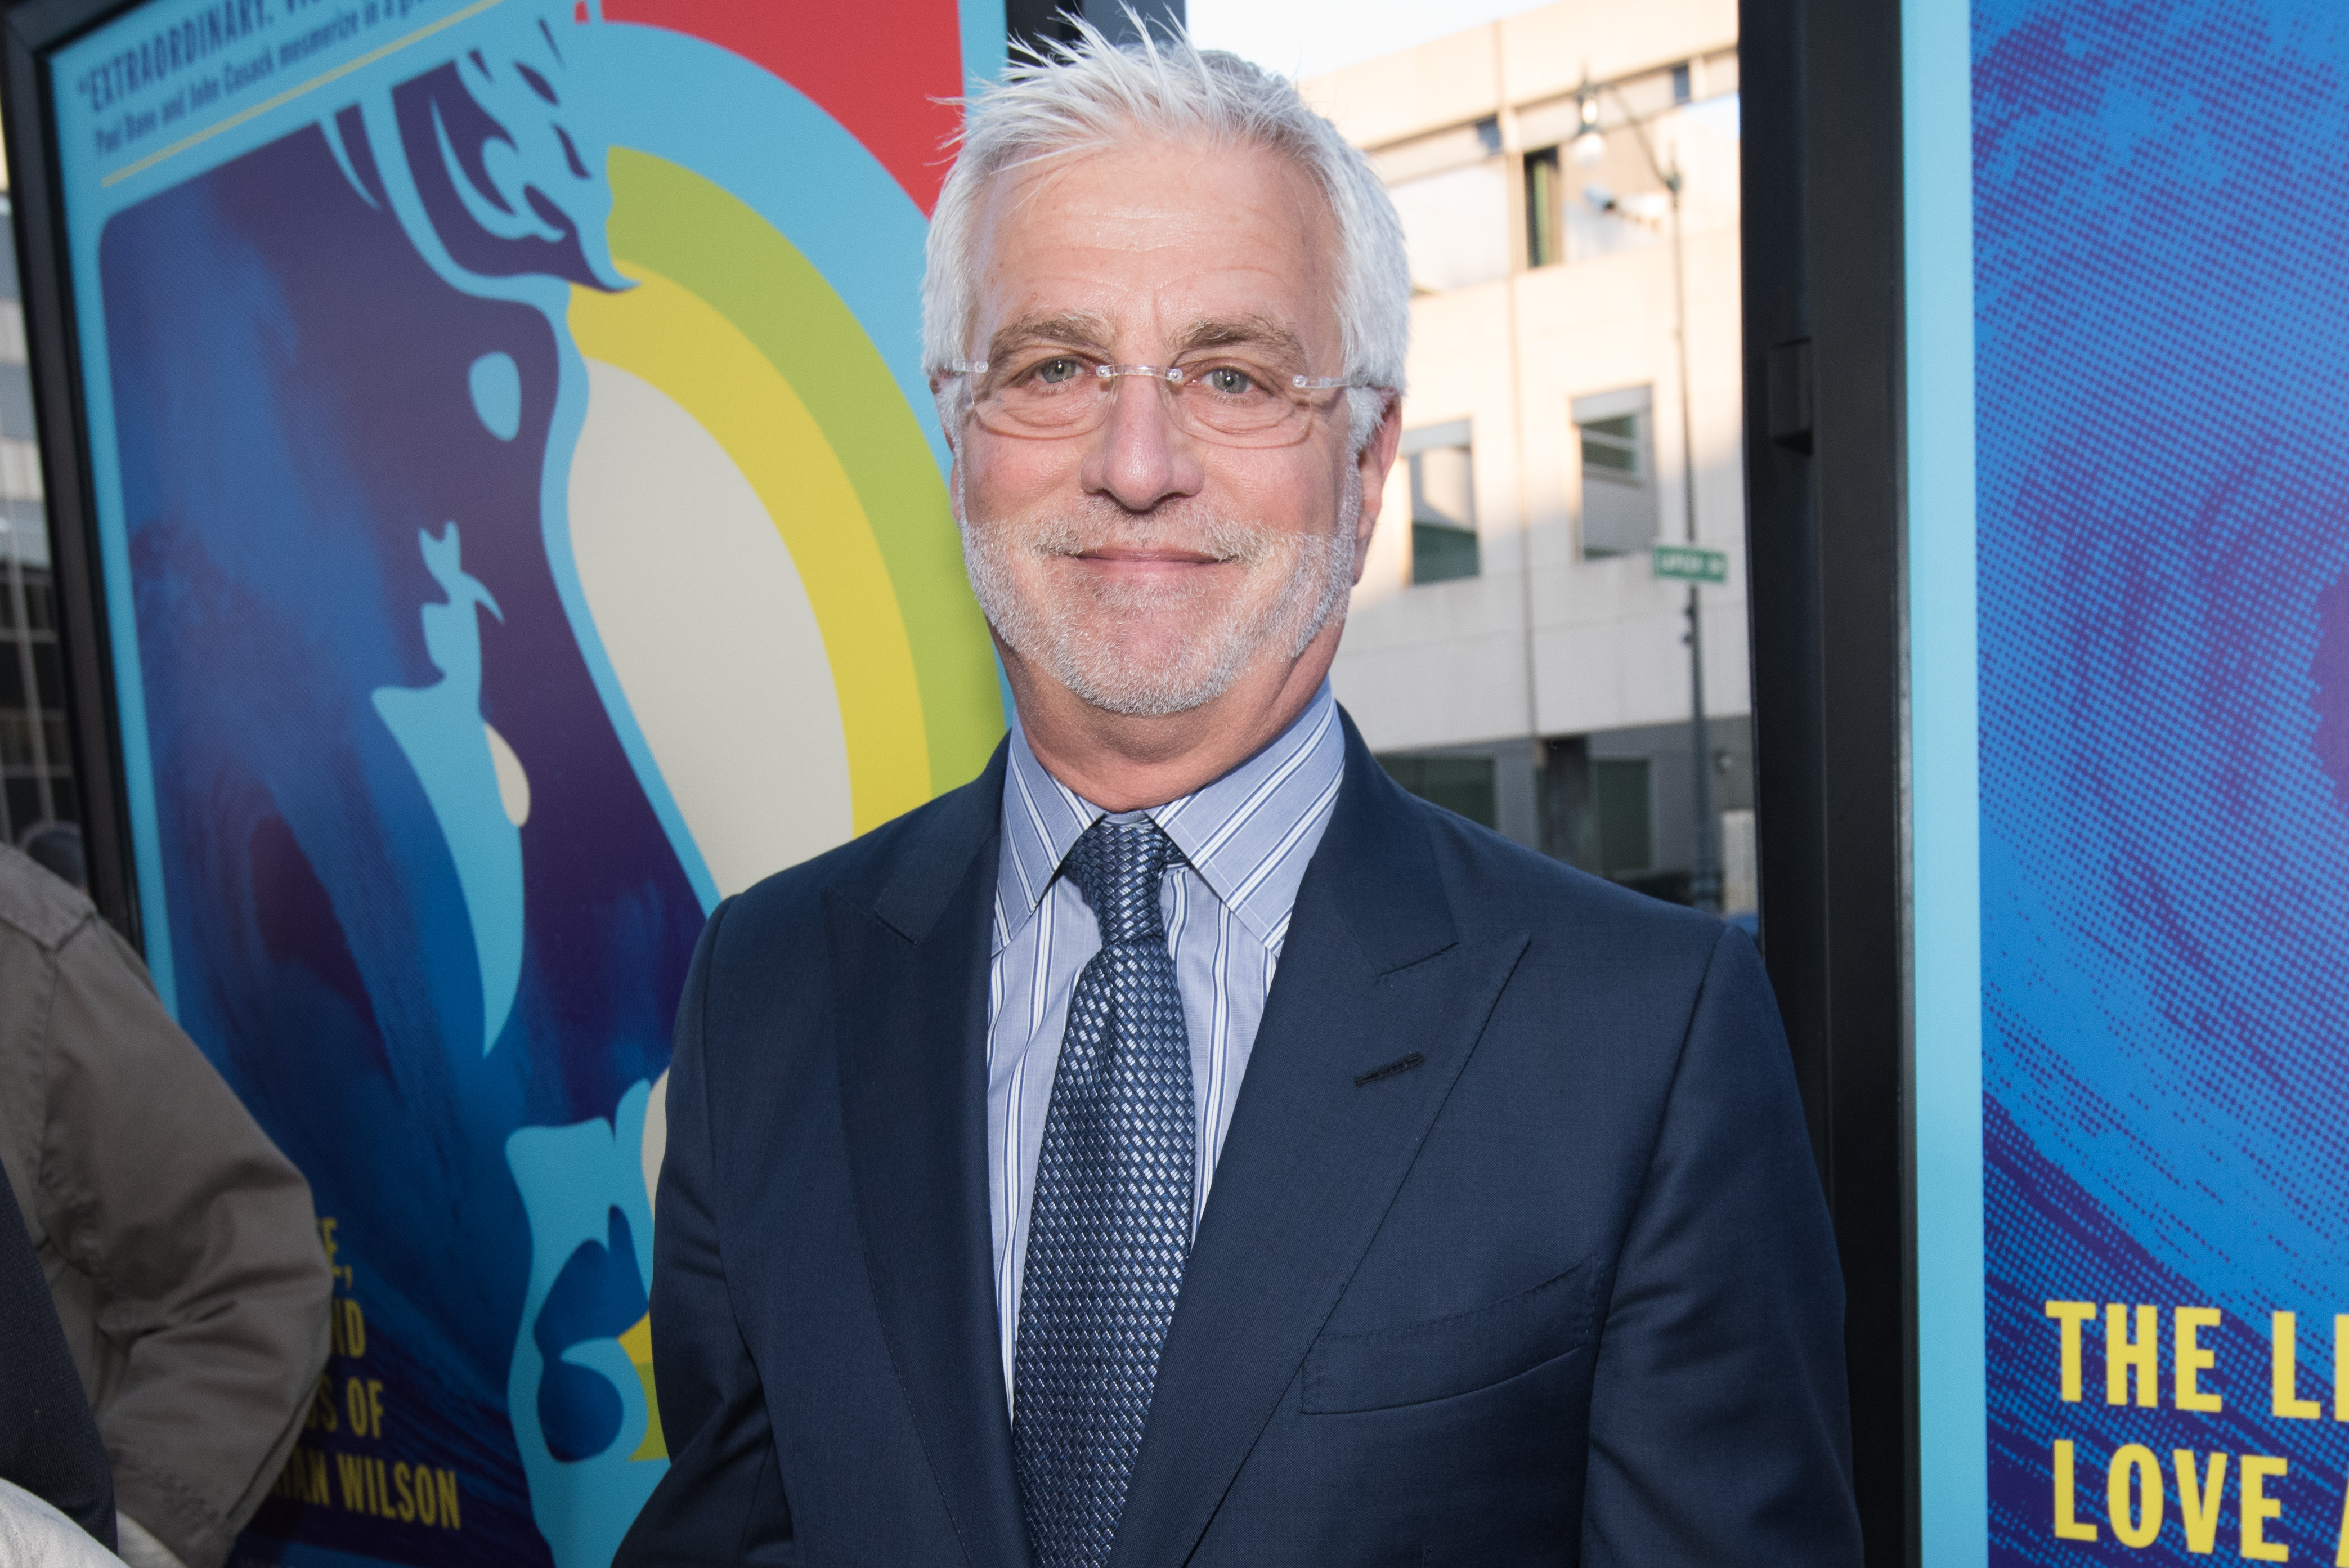 Co-Chairman of Lionsgate Motion Picture Group, Rob Friedman